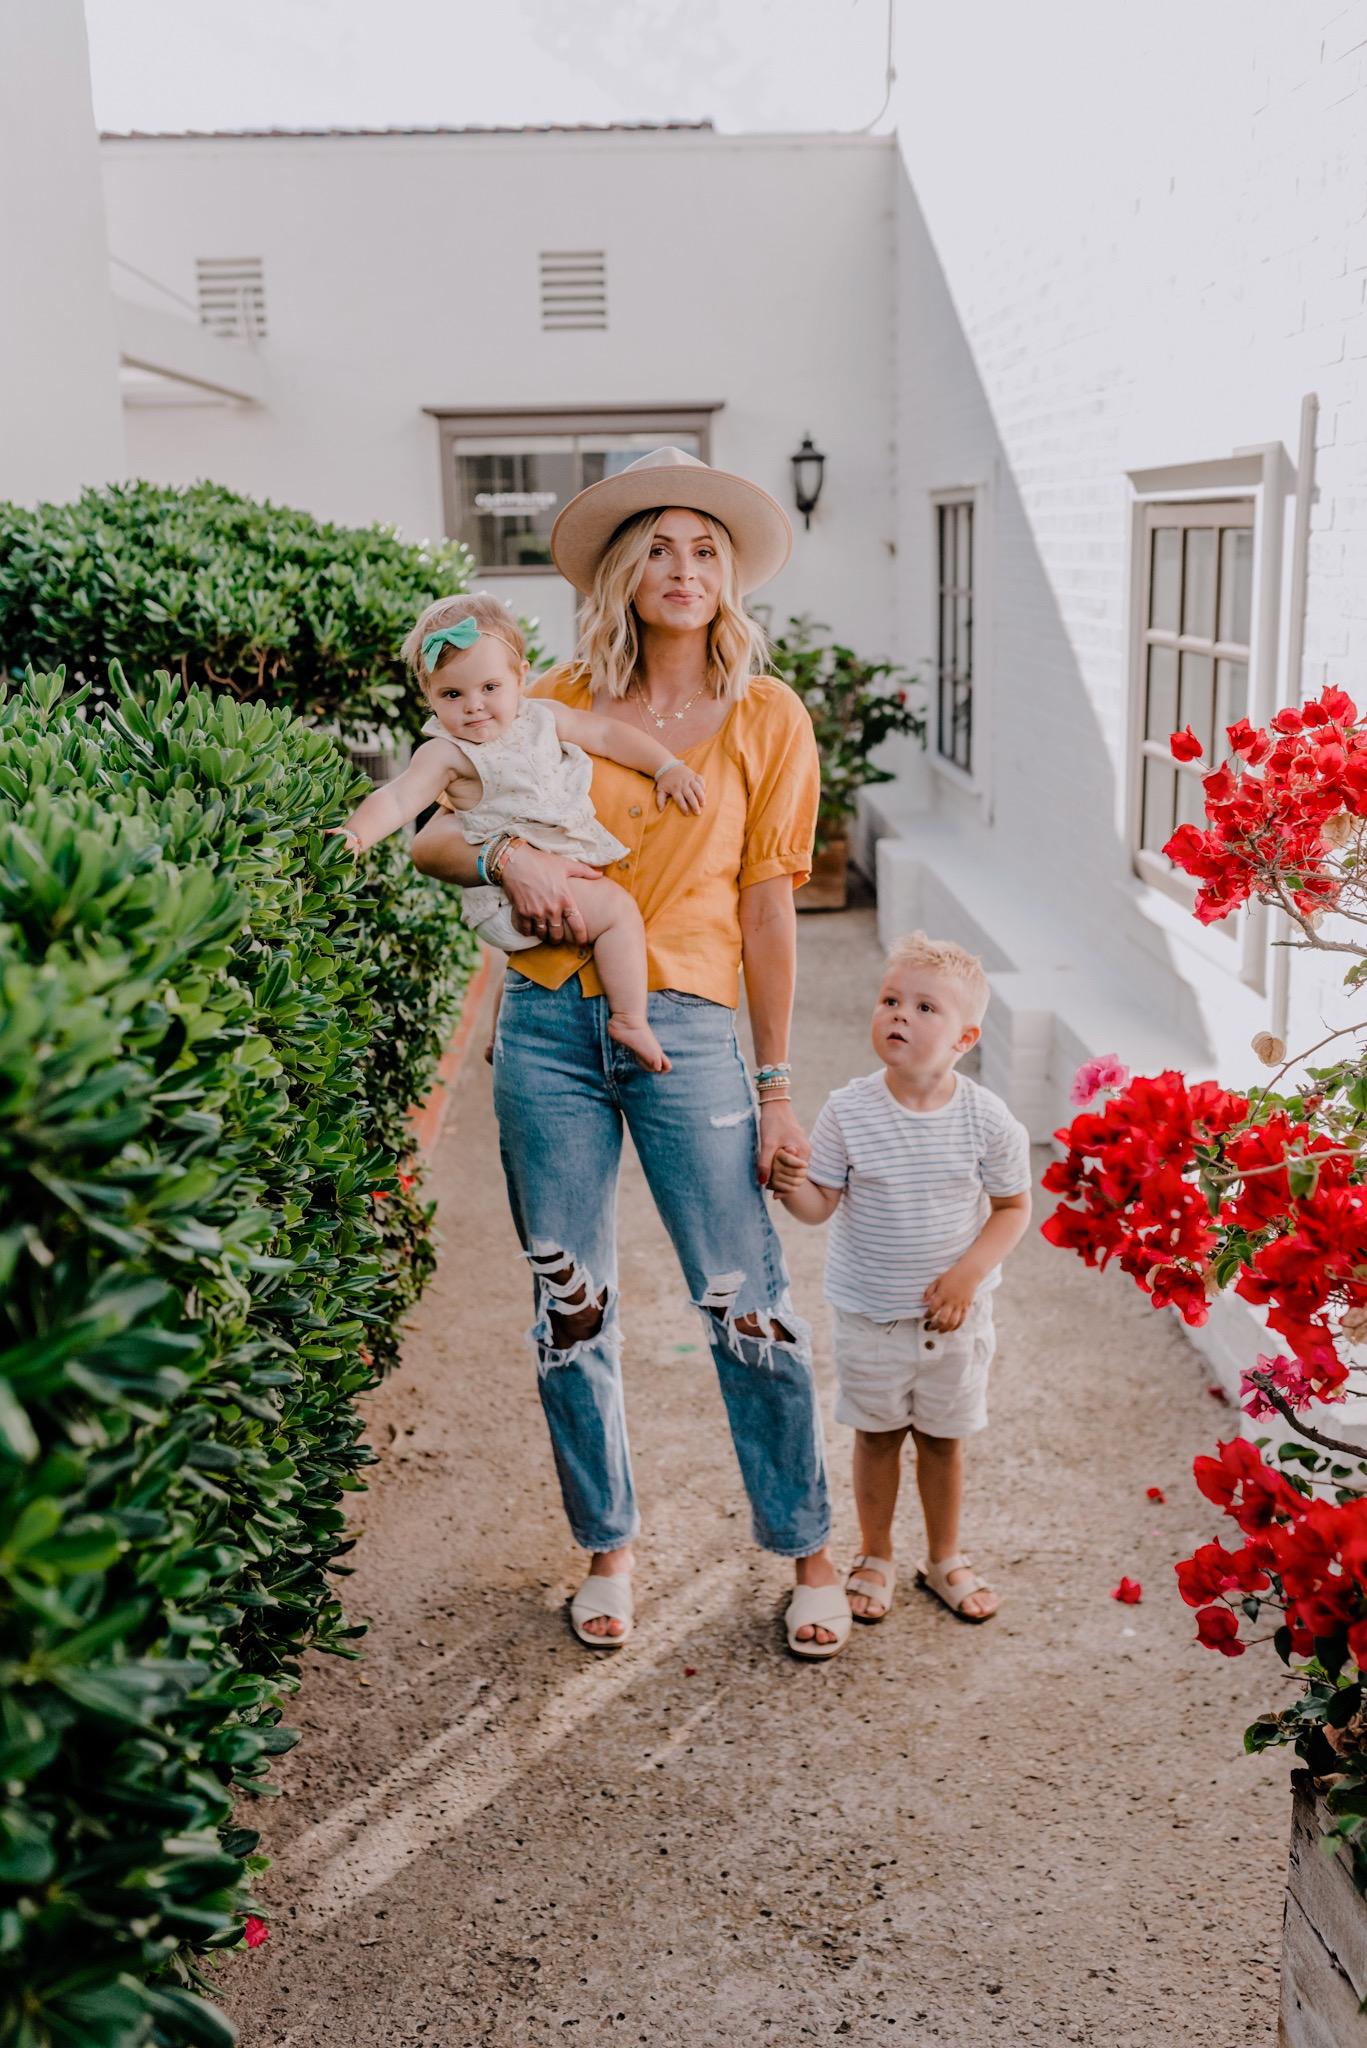 Summer Clothing by popular San Diego fashion blog, Navy Grace: image of a mom and her two kids standing outside by some red flower bushes and white brick building and wearing a Everlane The Linen Puff-Sleeve Top, Agolde 90s Mid Rise Loose Fit, Everlane The Day Crossover Sandal, Amazon Gigi Pip Monroe Oatmeal - Women's Rancher Hat, Little Poppy bow, and H&M faux suede sandals.